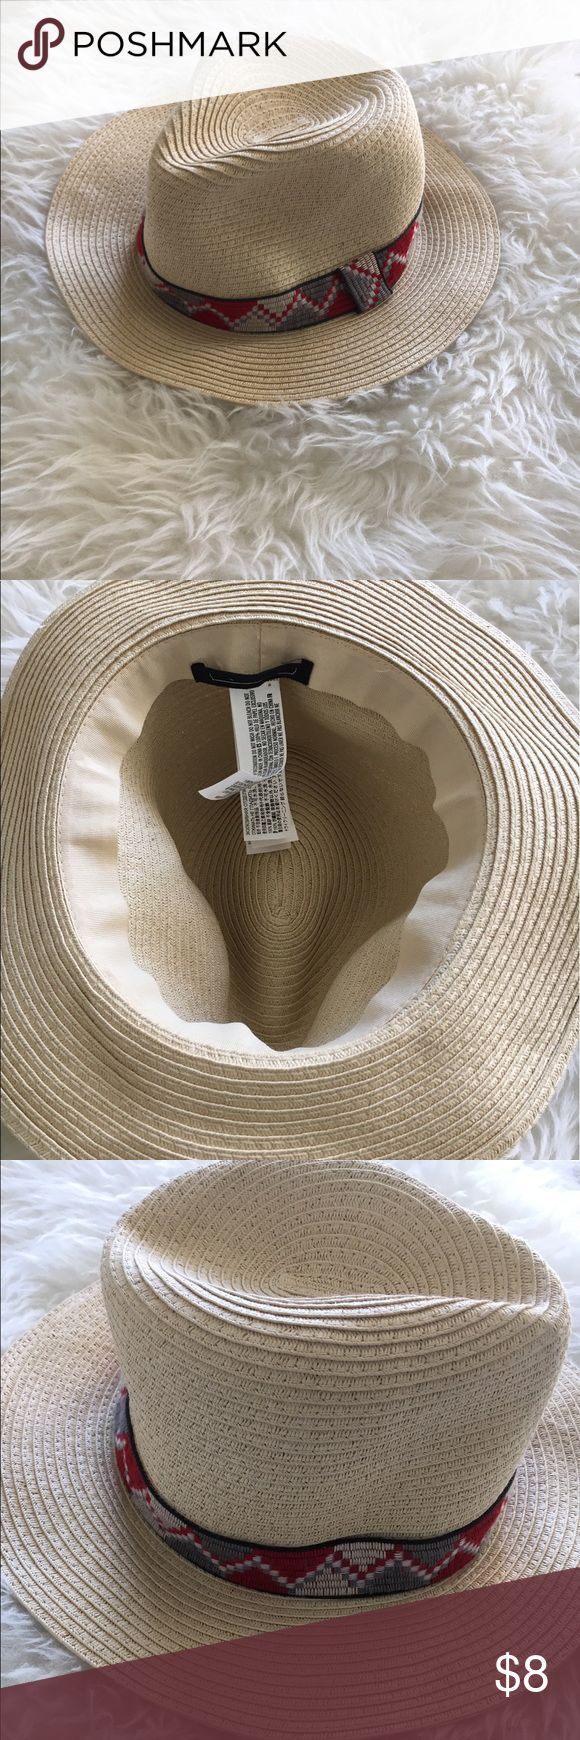 """NWOT Forever 21 Straw Fedora Super cute hat! Perfect for spring/ summer. Diameter is about 8"""" as the hat is flexible so can mold. Could be women's m/l or a men's small. Has a light makeup stain at top from try on (see photo). Forever 21 Accessories Hats"""